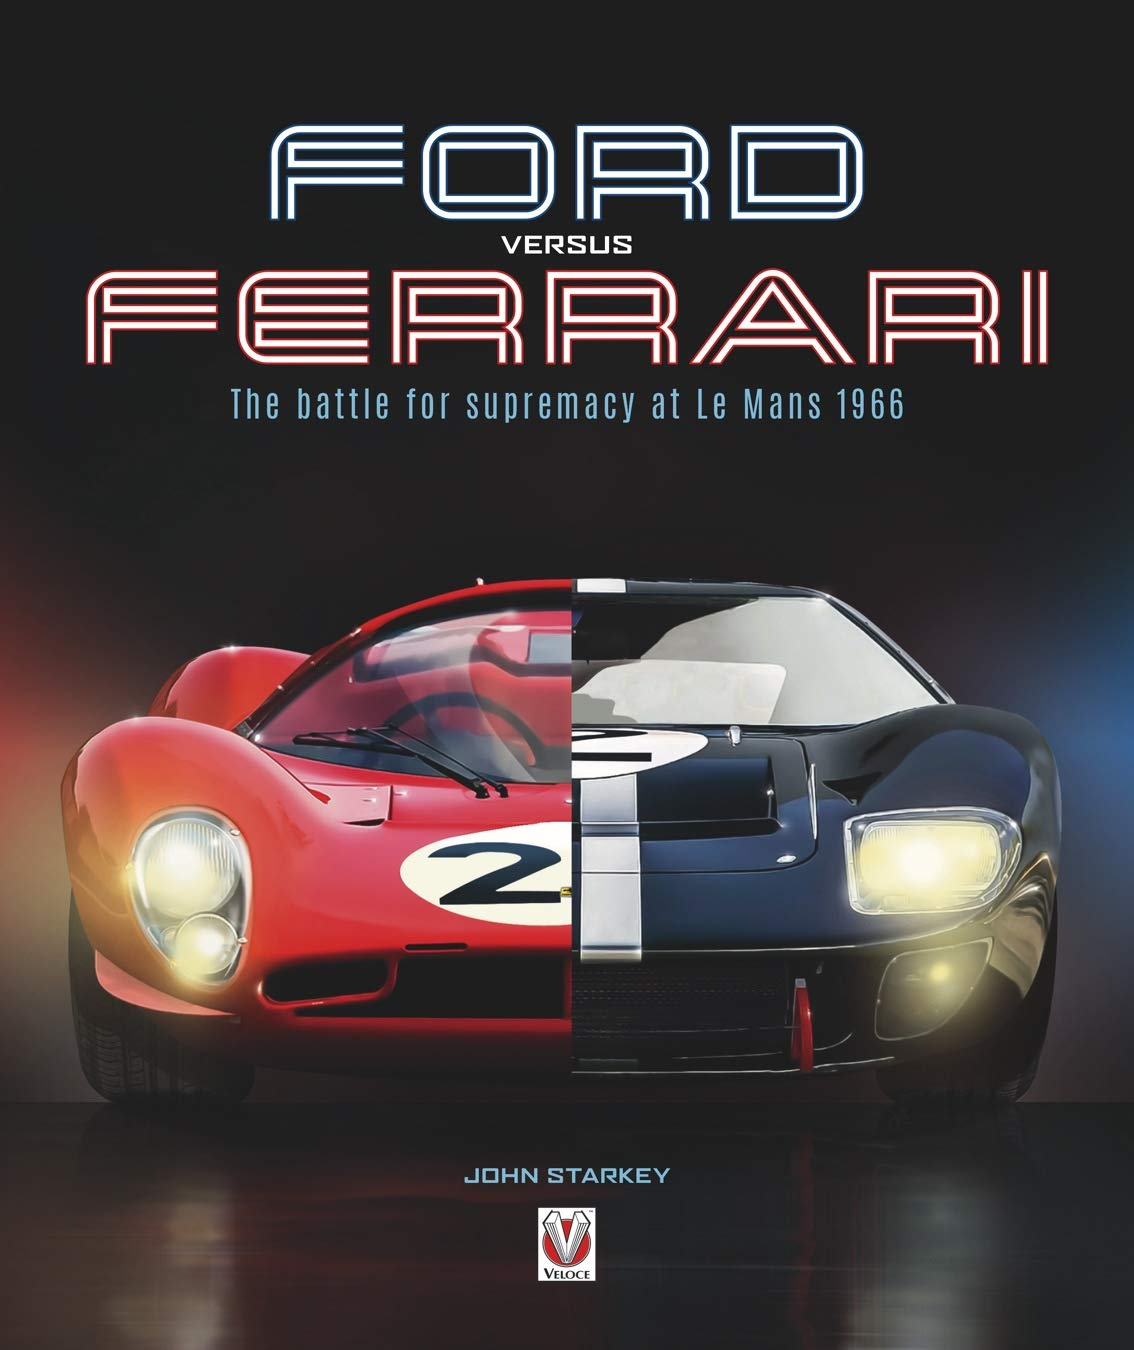 Ford versus Ferrari The battle for supremacy at Le Mans